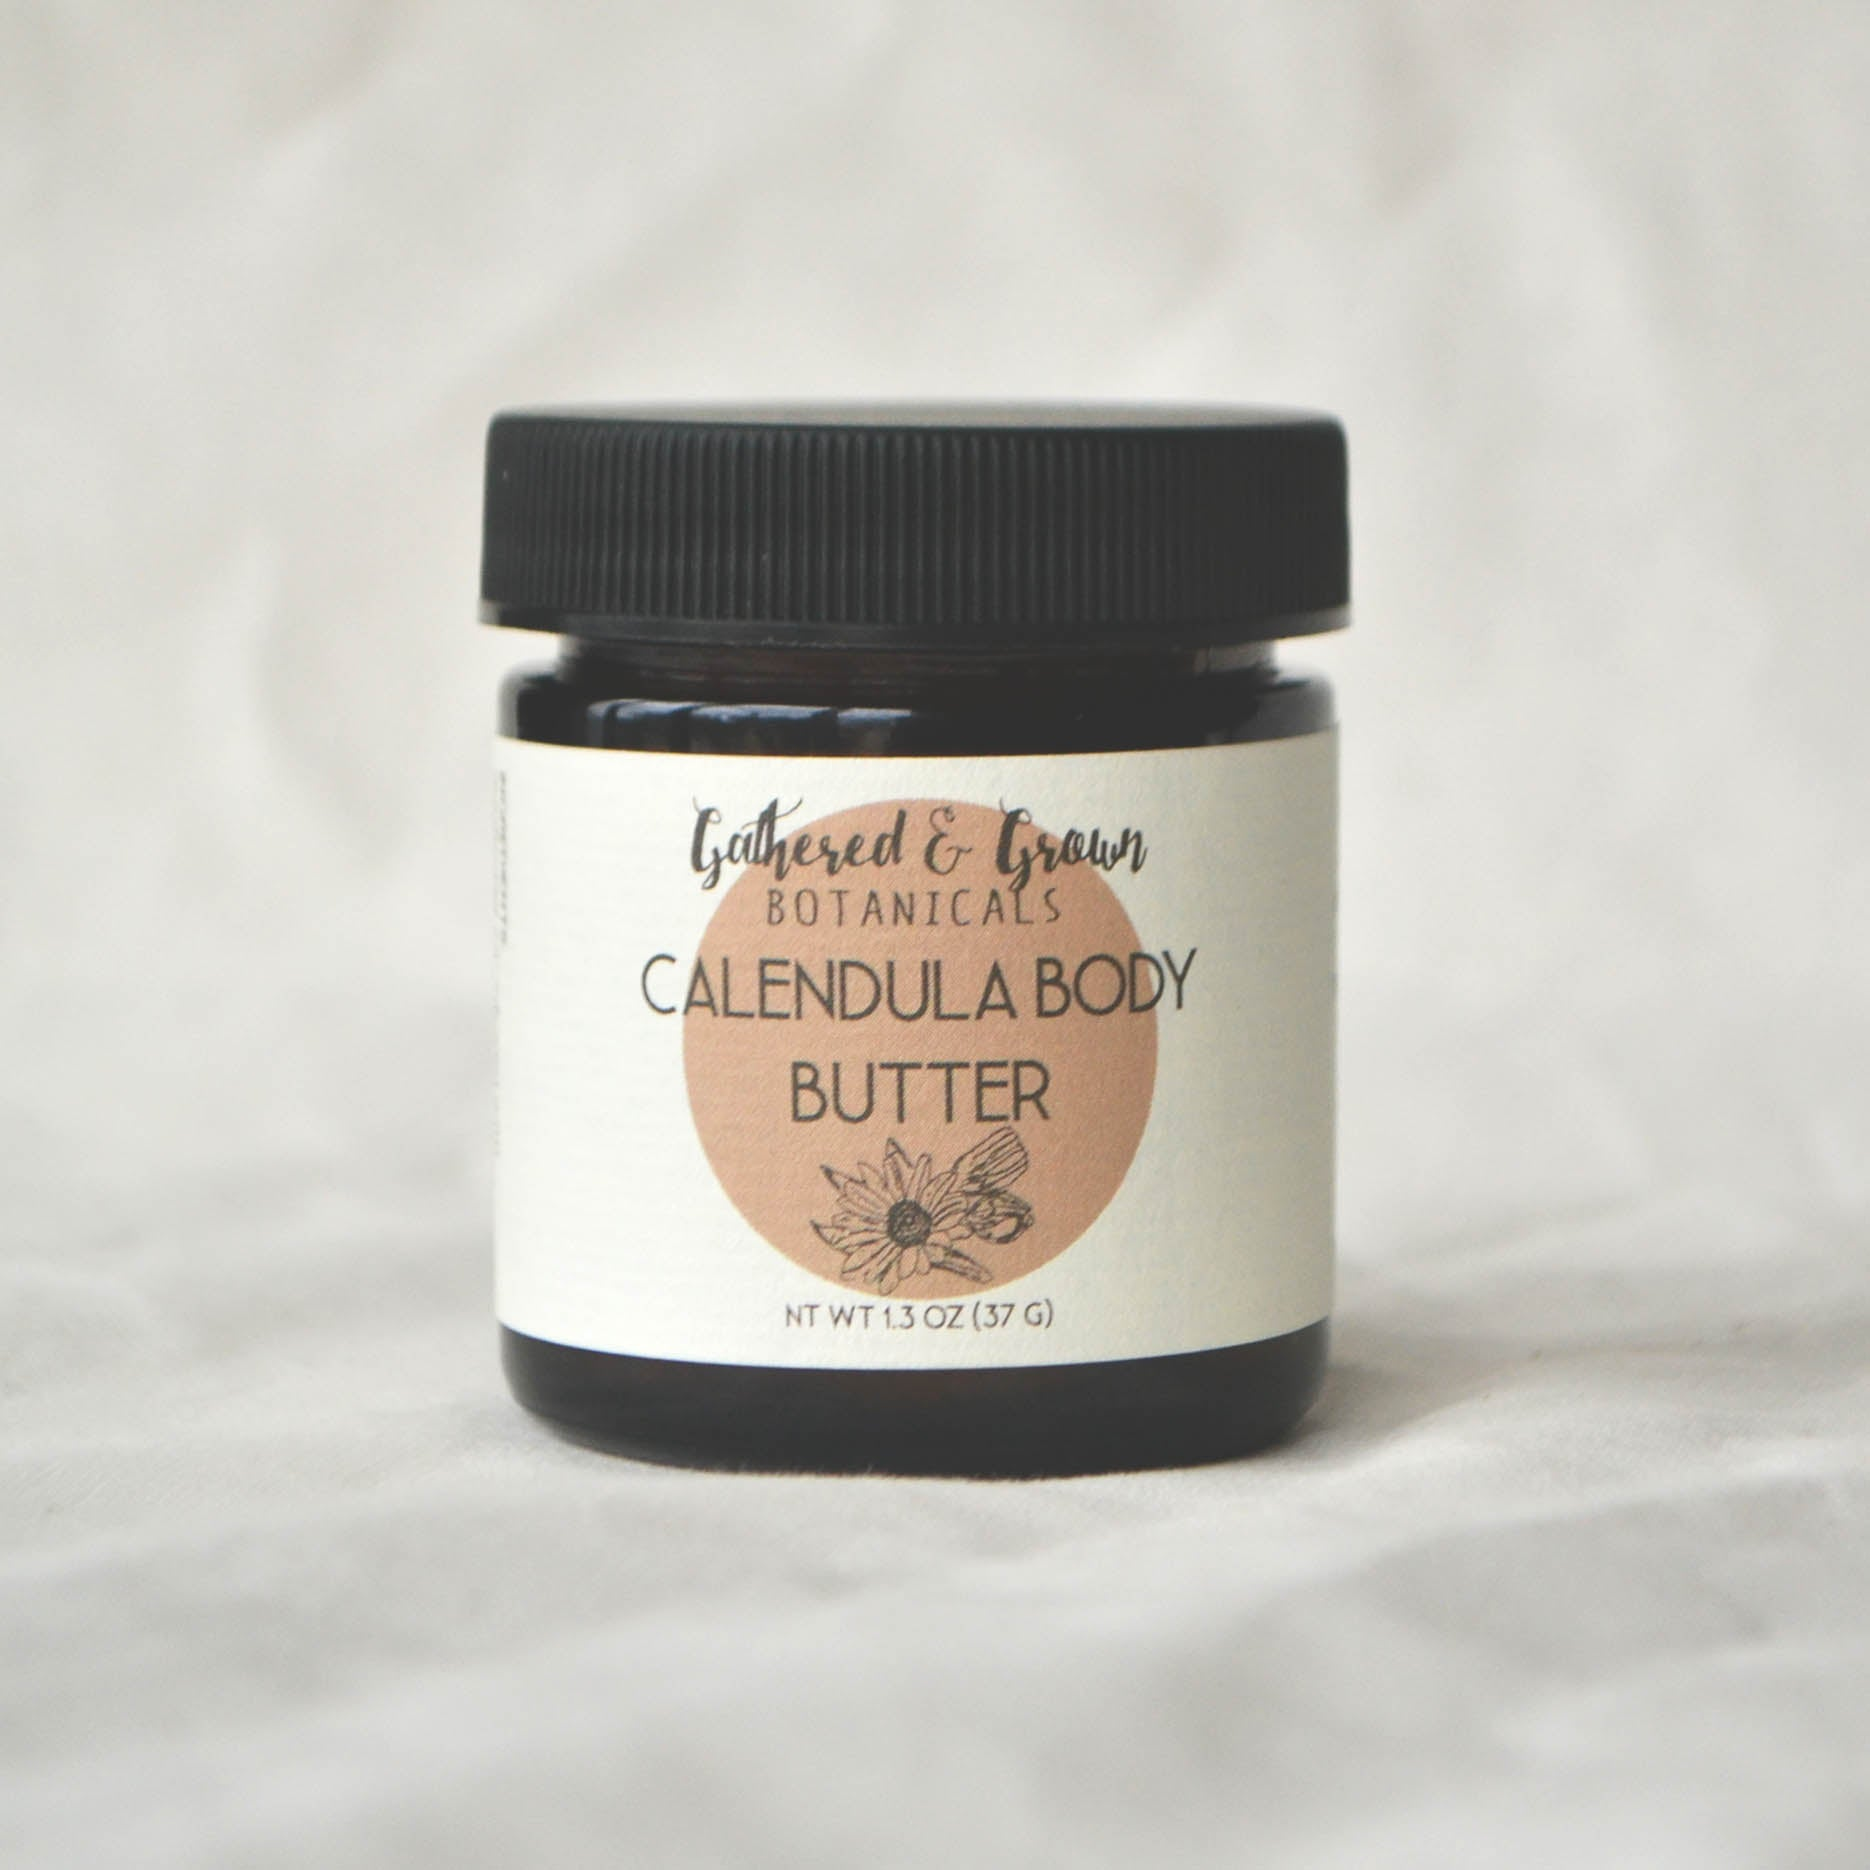 Gathered and Grown Botanicals - 1.3oz Calendula Body Butter